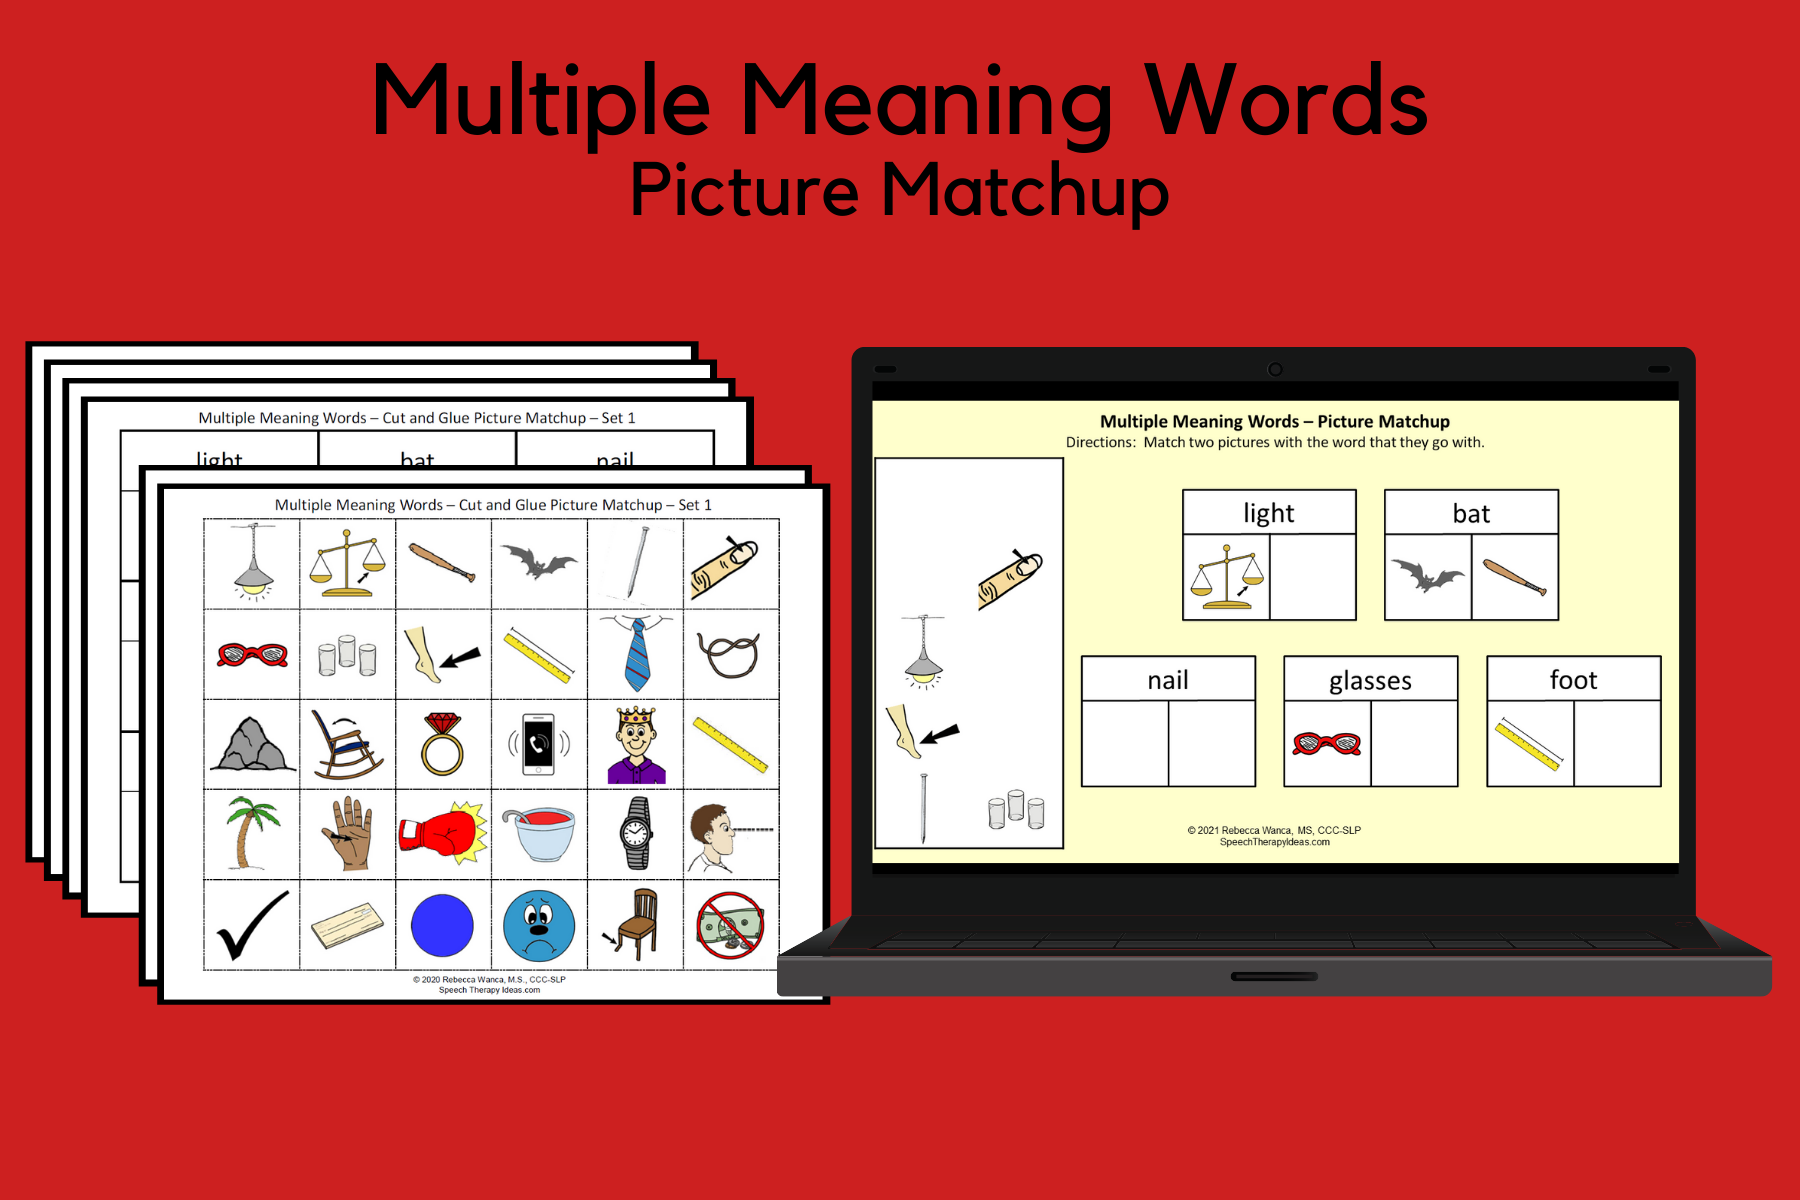 Multiple Meaning Words - Picture Matchup